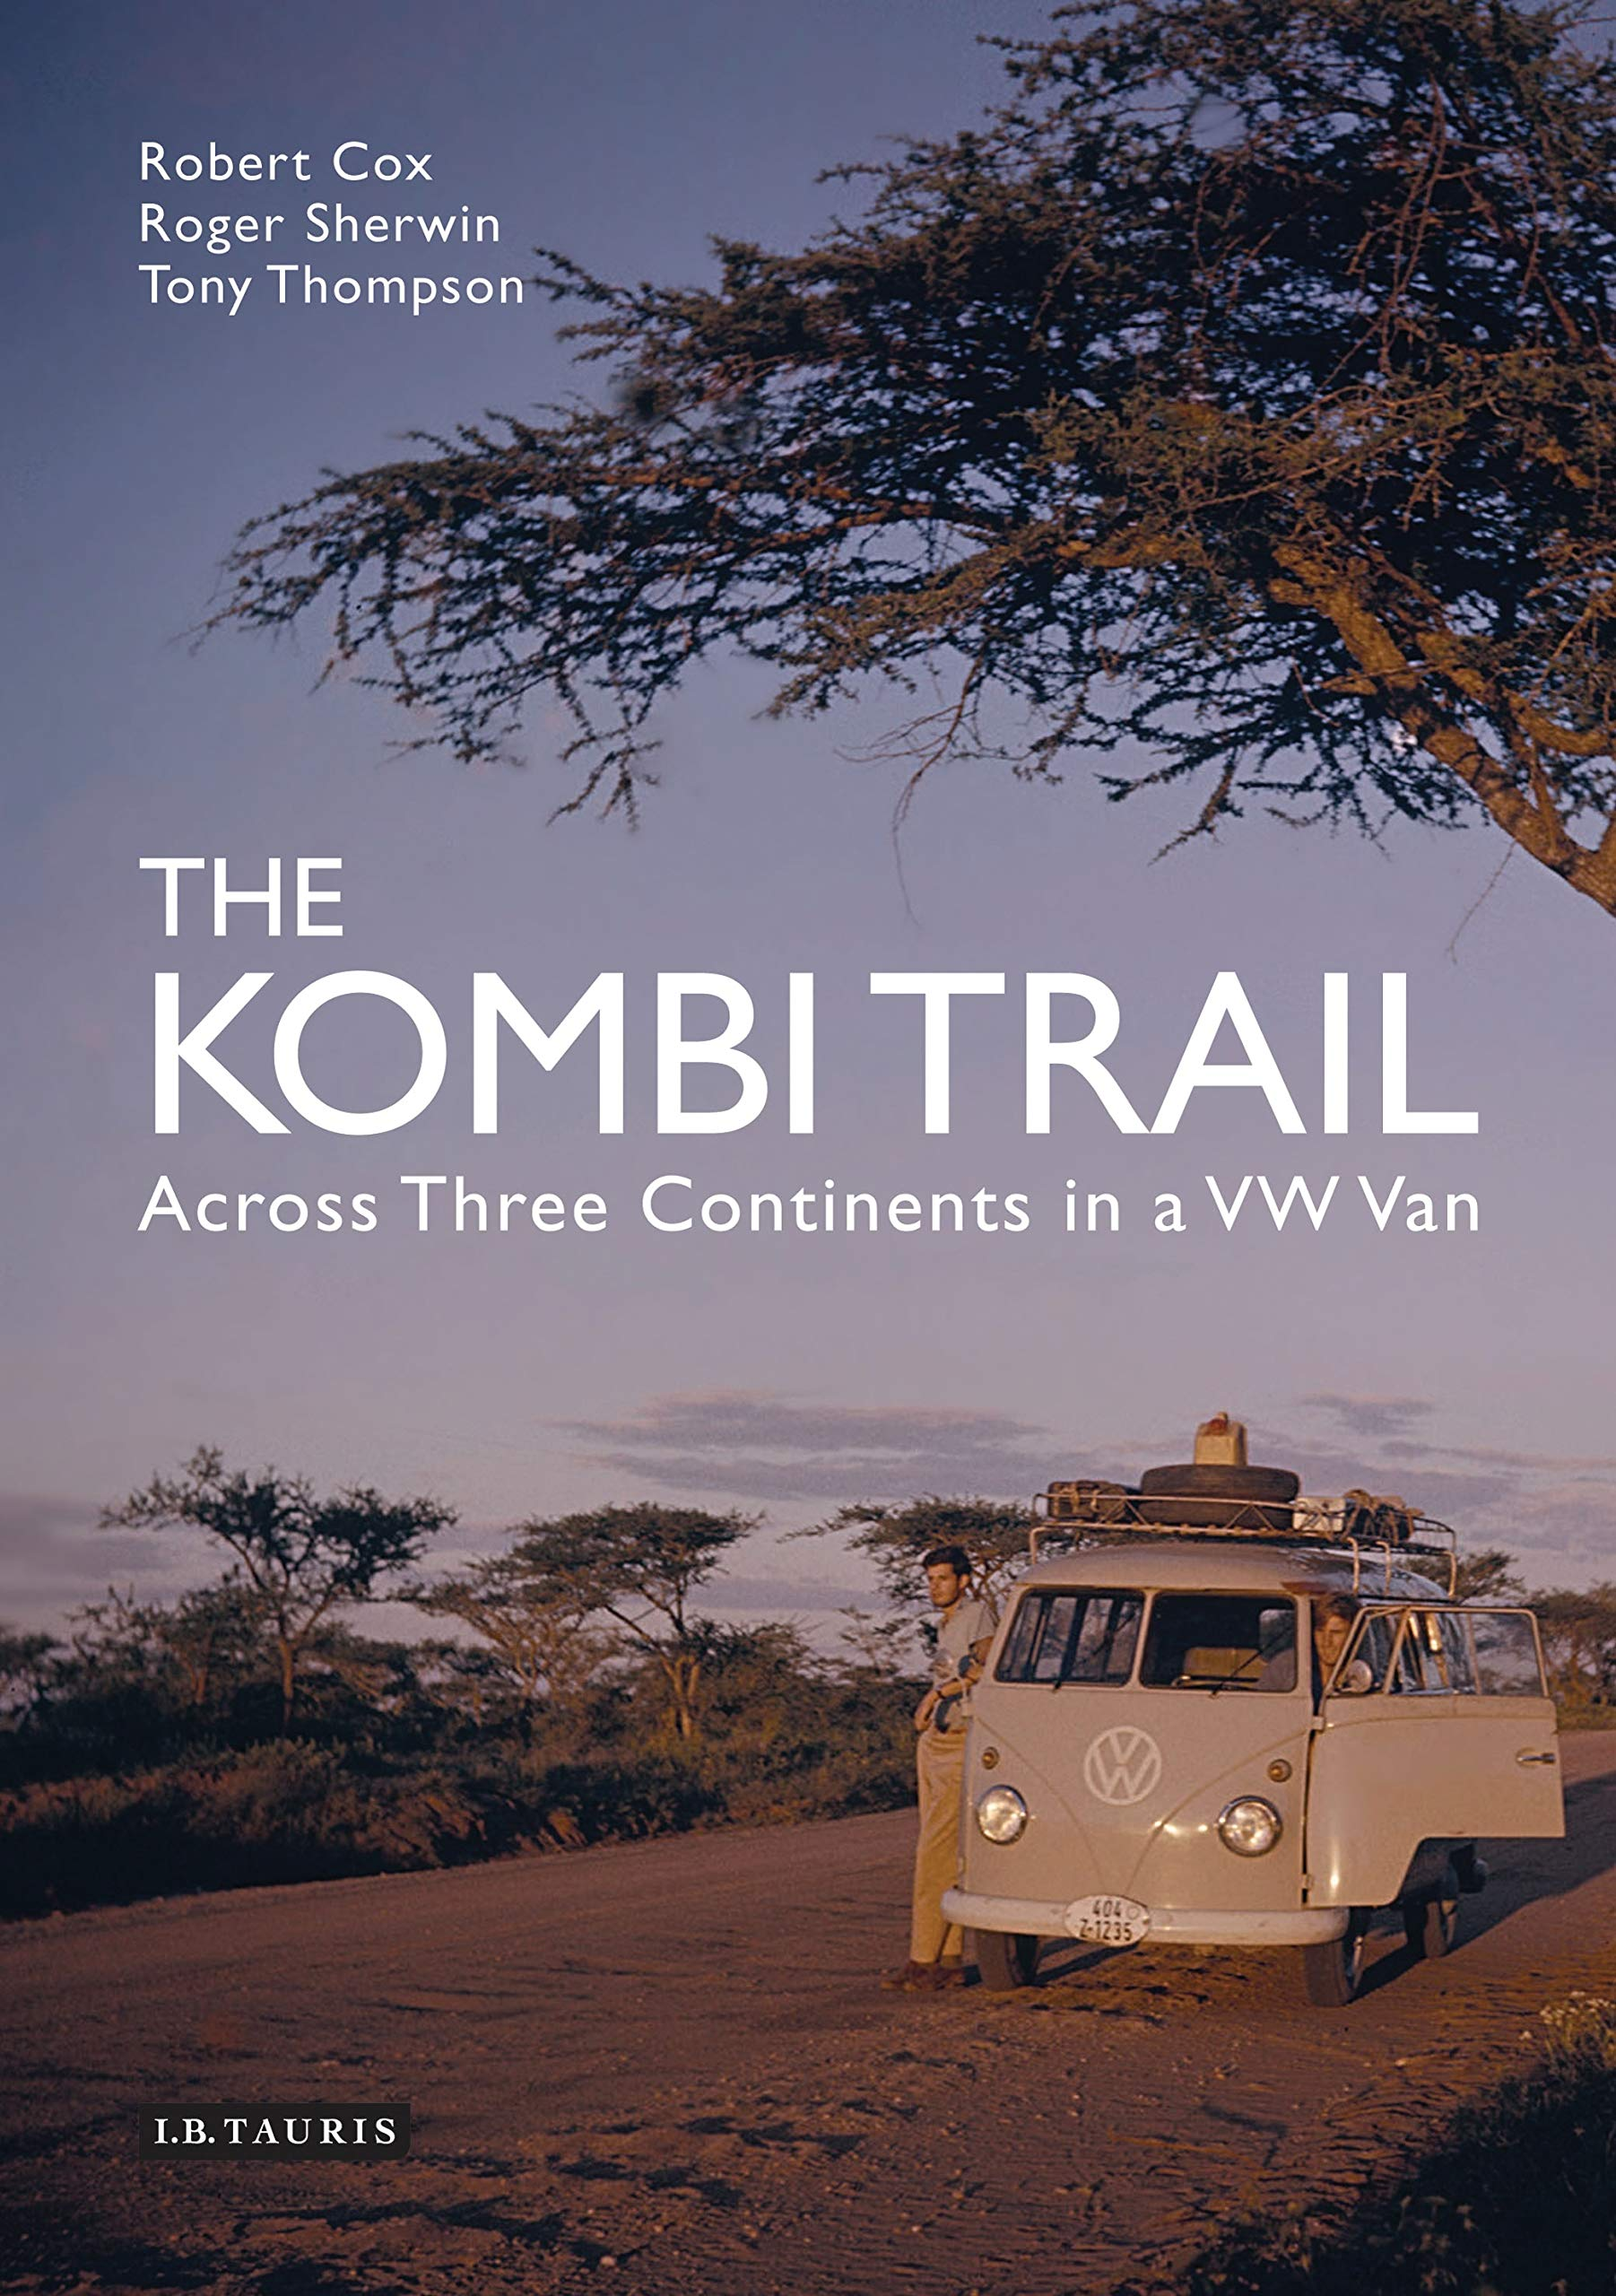 Image OfThe Kombi Trail: Across Three Continents In A VW Van